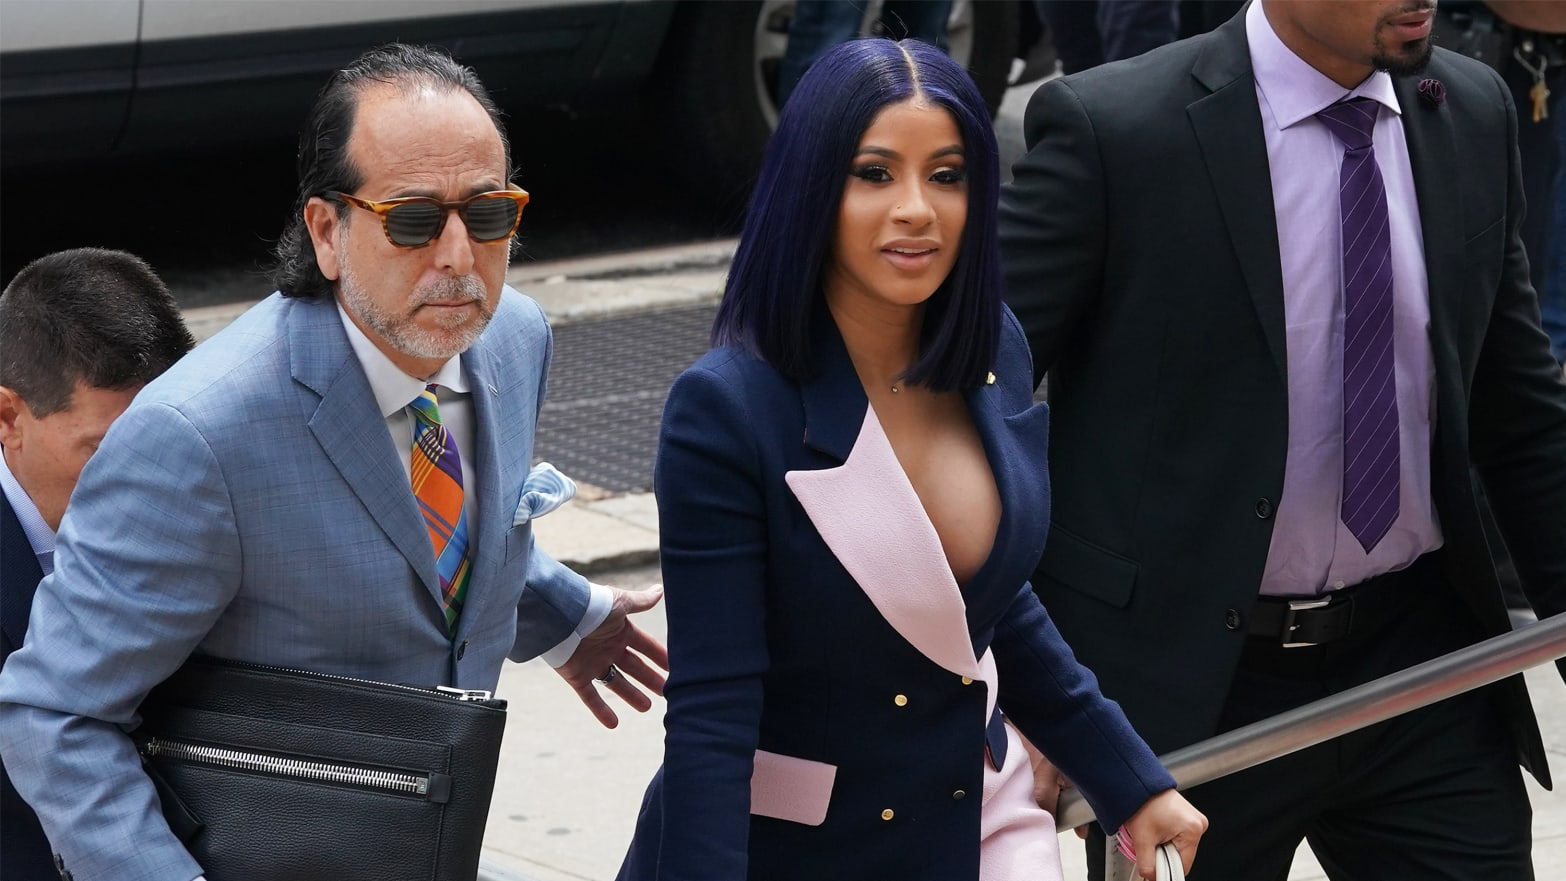 Cardi B Court: Cardi B In Court: How A Club Fight Turned Into A Felony